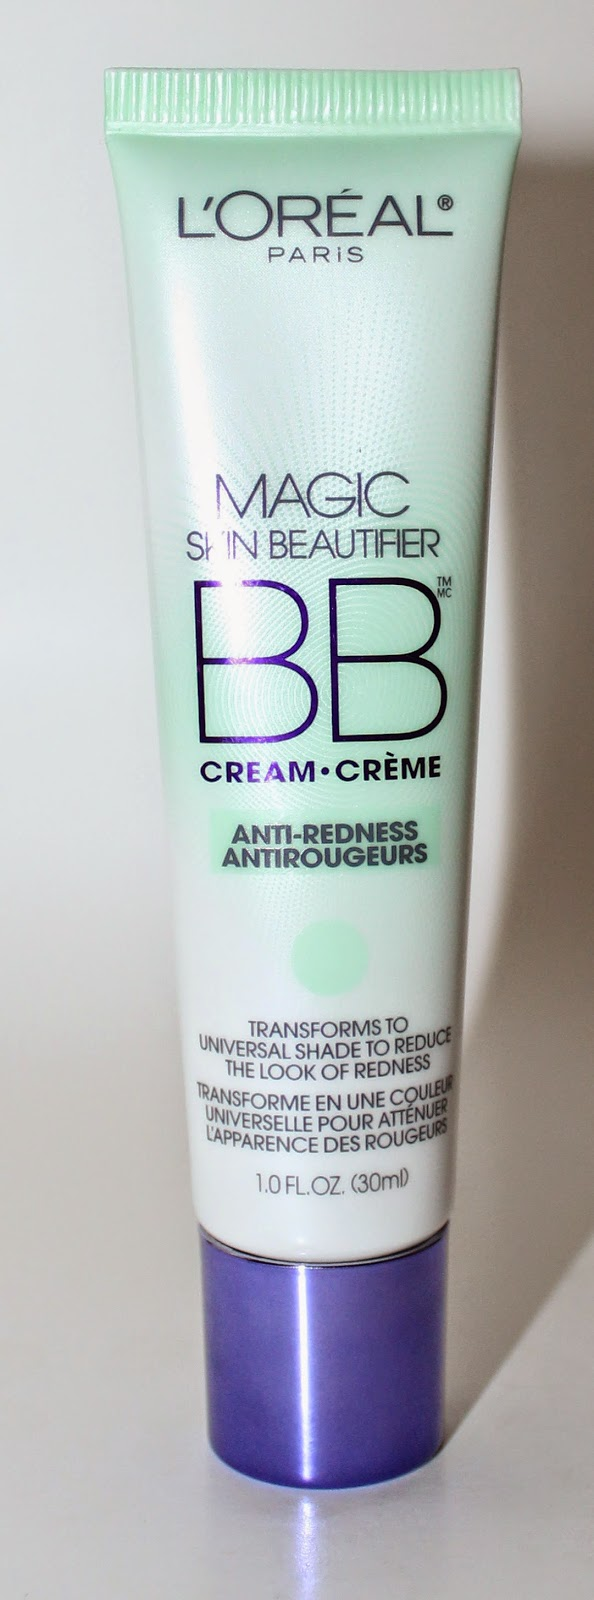 L'Oréal Magic Skin Beautifier BB Cream Anti-Redness